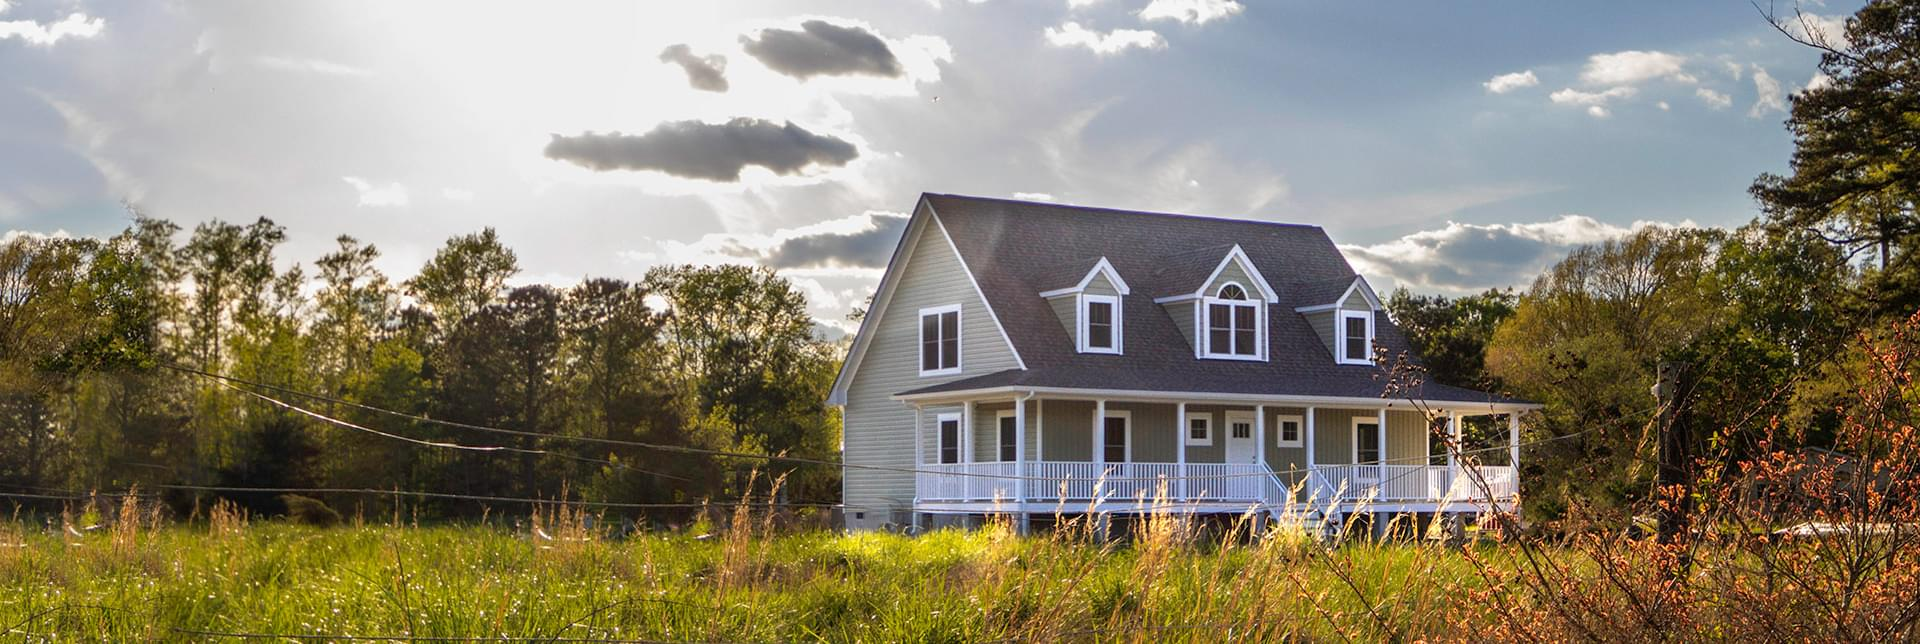 New Homes in Isle of Wight County VA